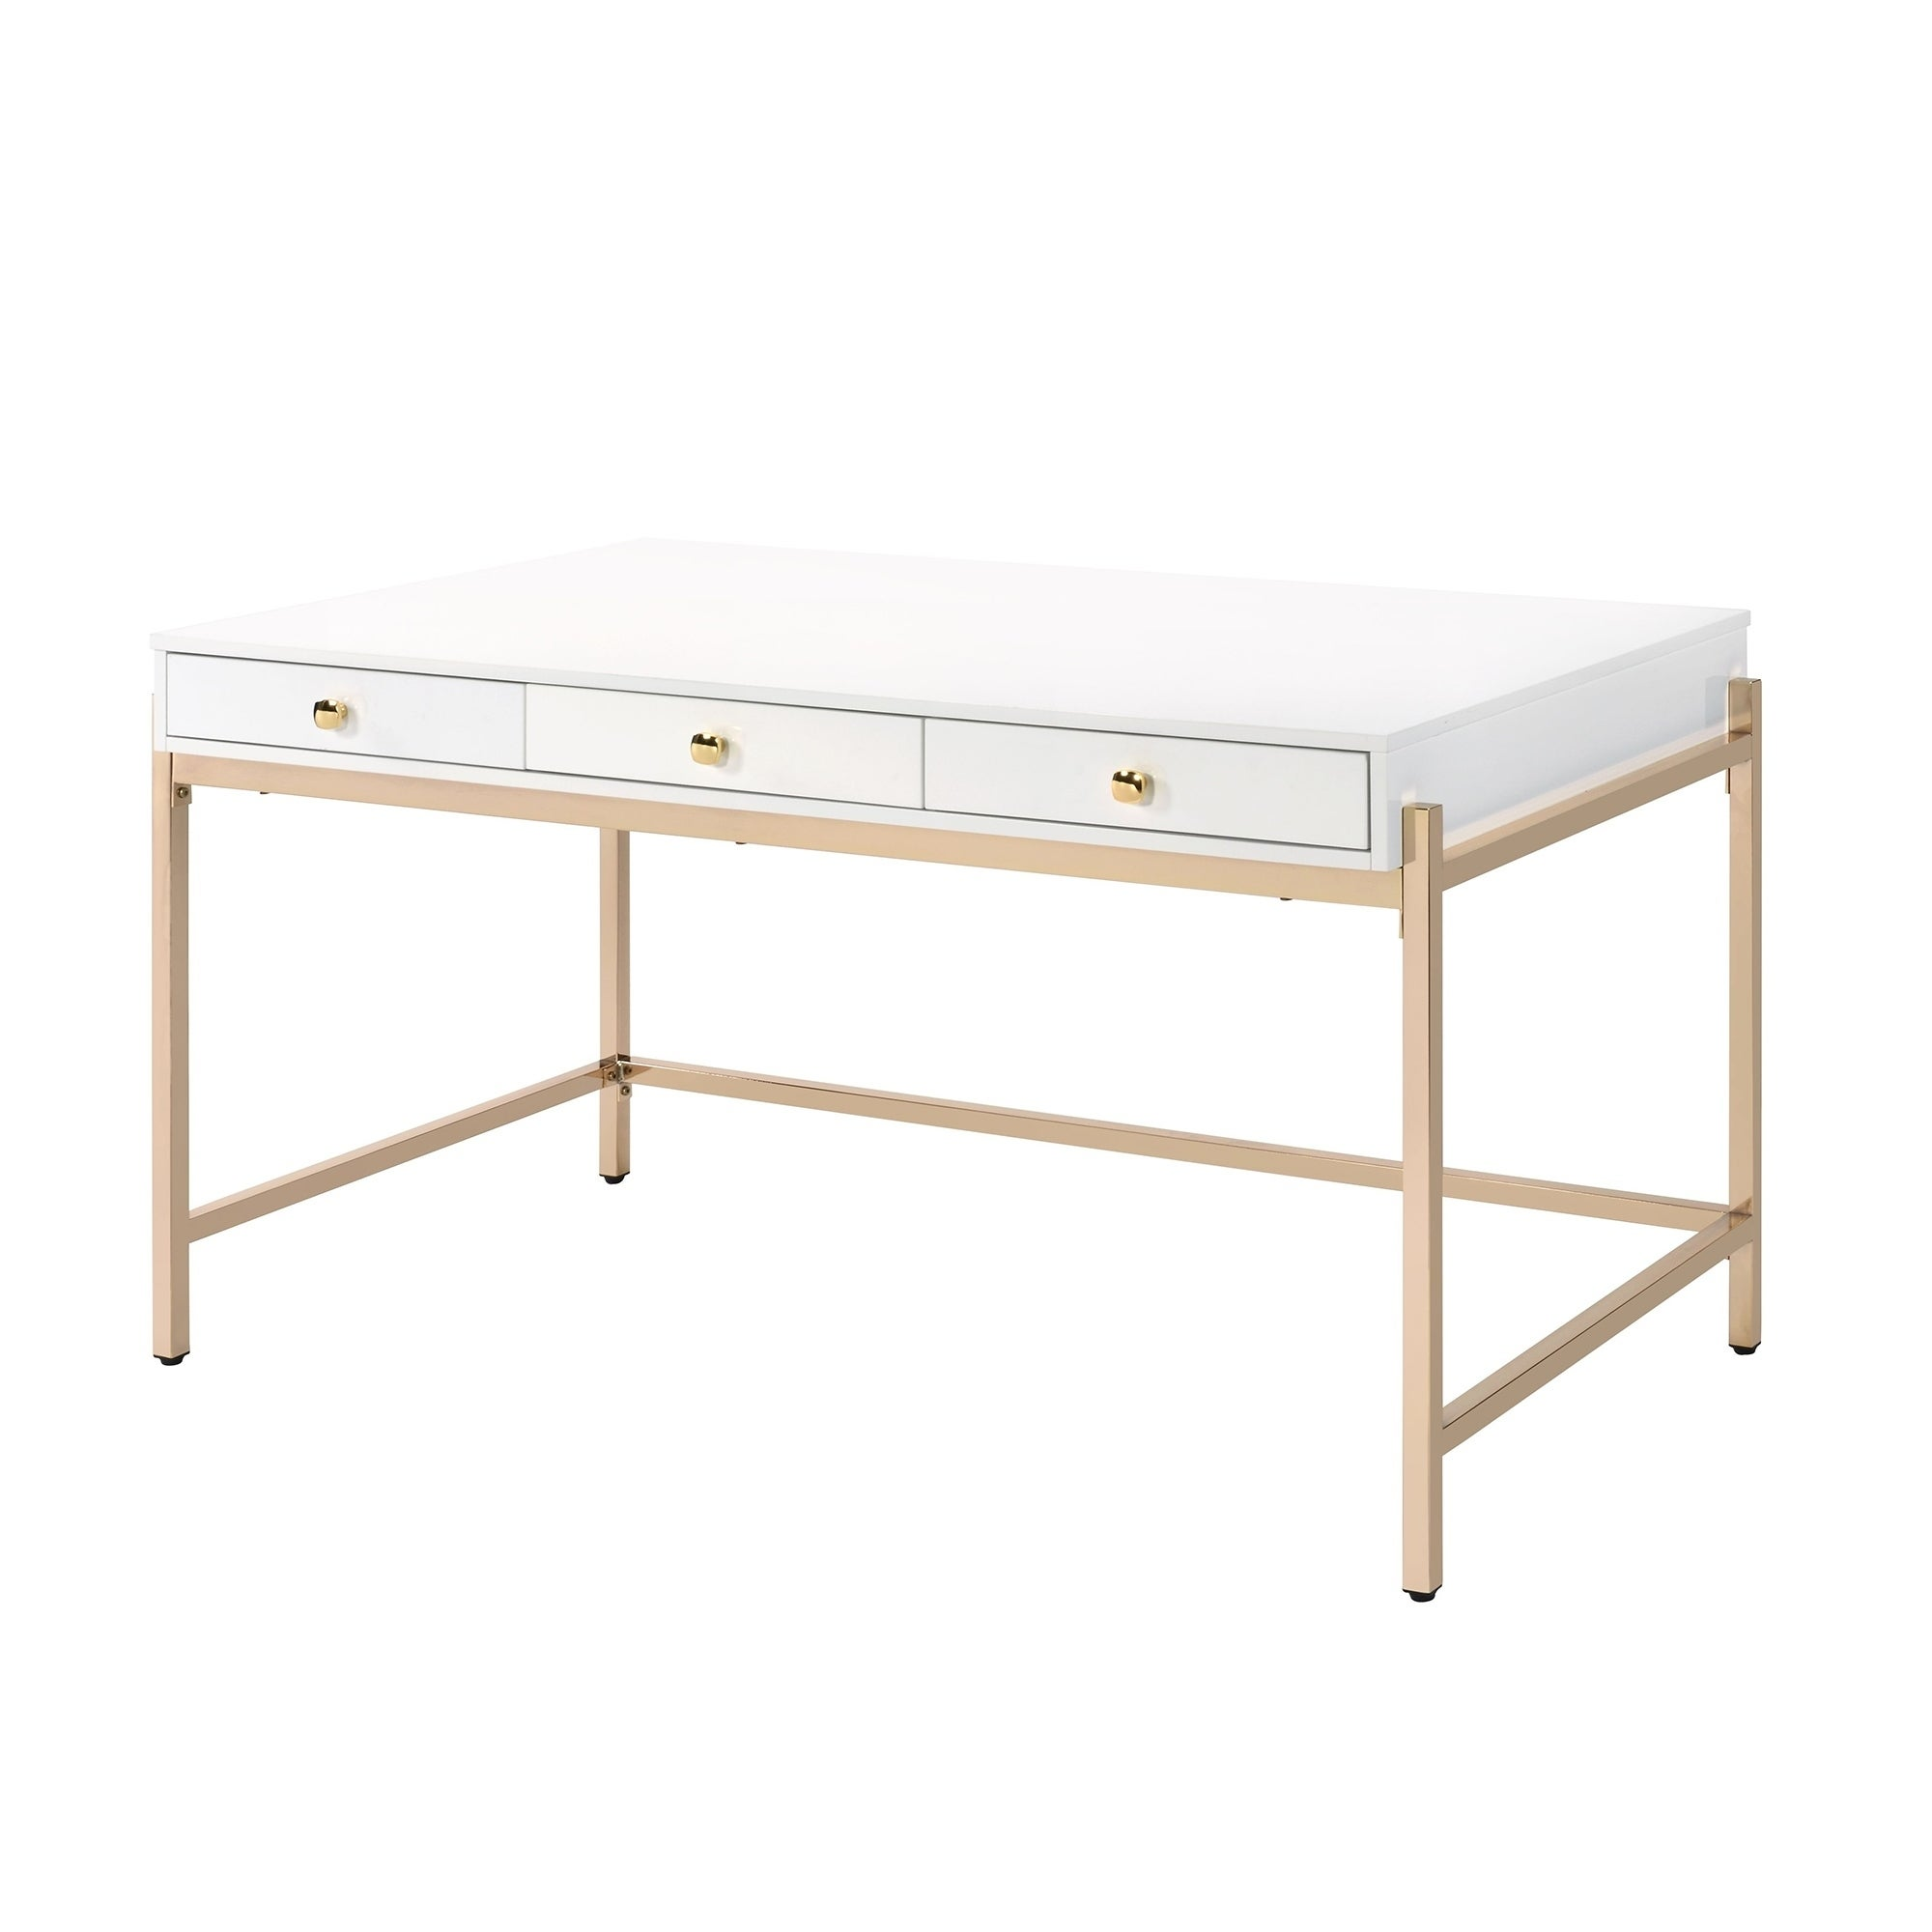 Wooden Desk With 3 Drawers And Metal Frame Glossy White And Rose Gold Overstock 30968305